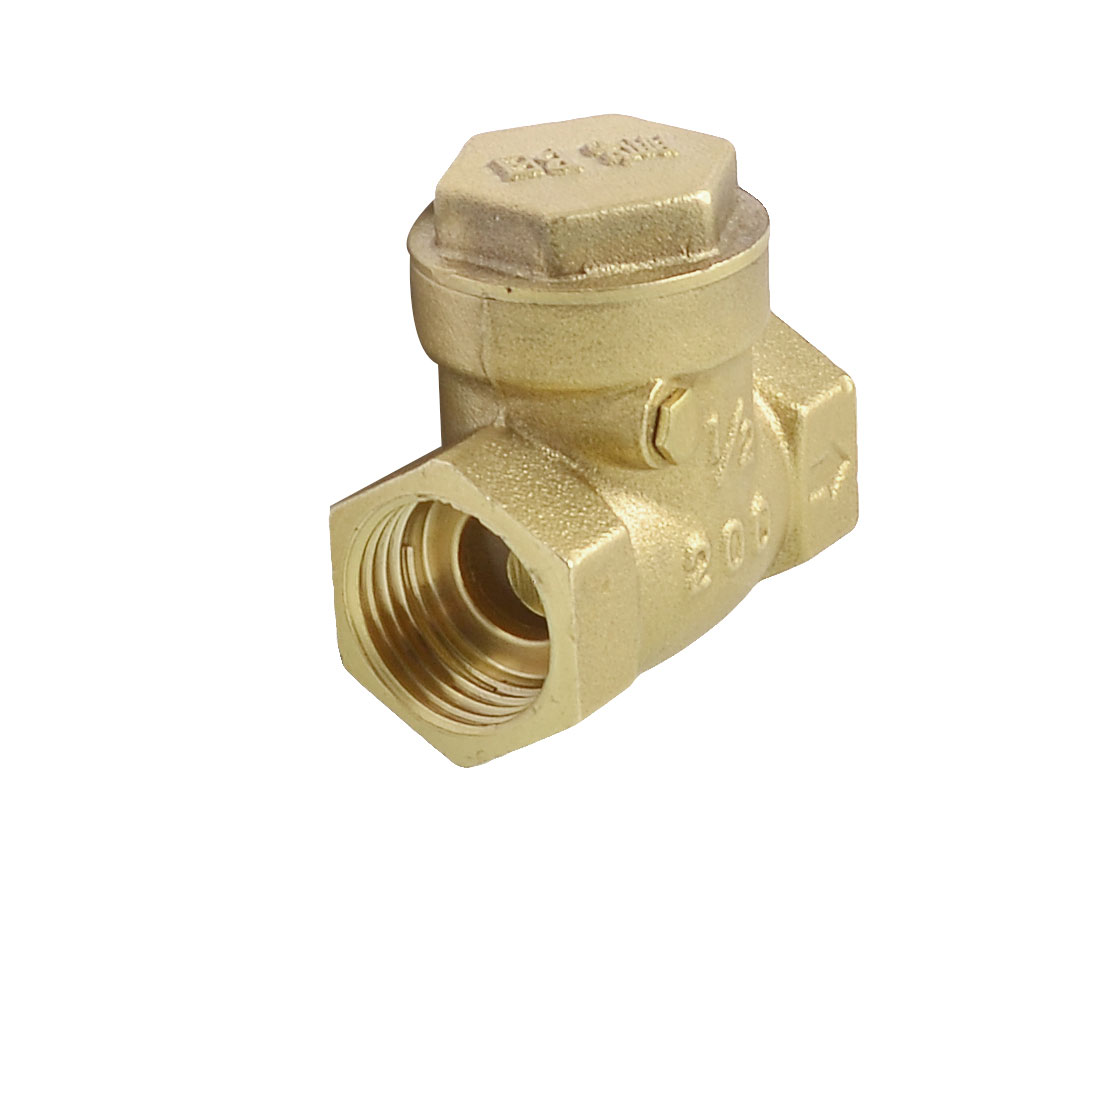 "NPT 1/2"" Screw Thread Plumbing Water Heater Check Valve Brass Tone"